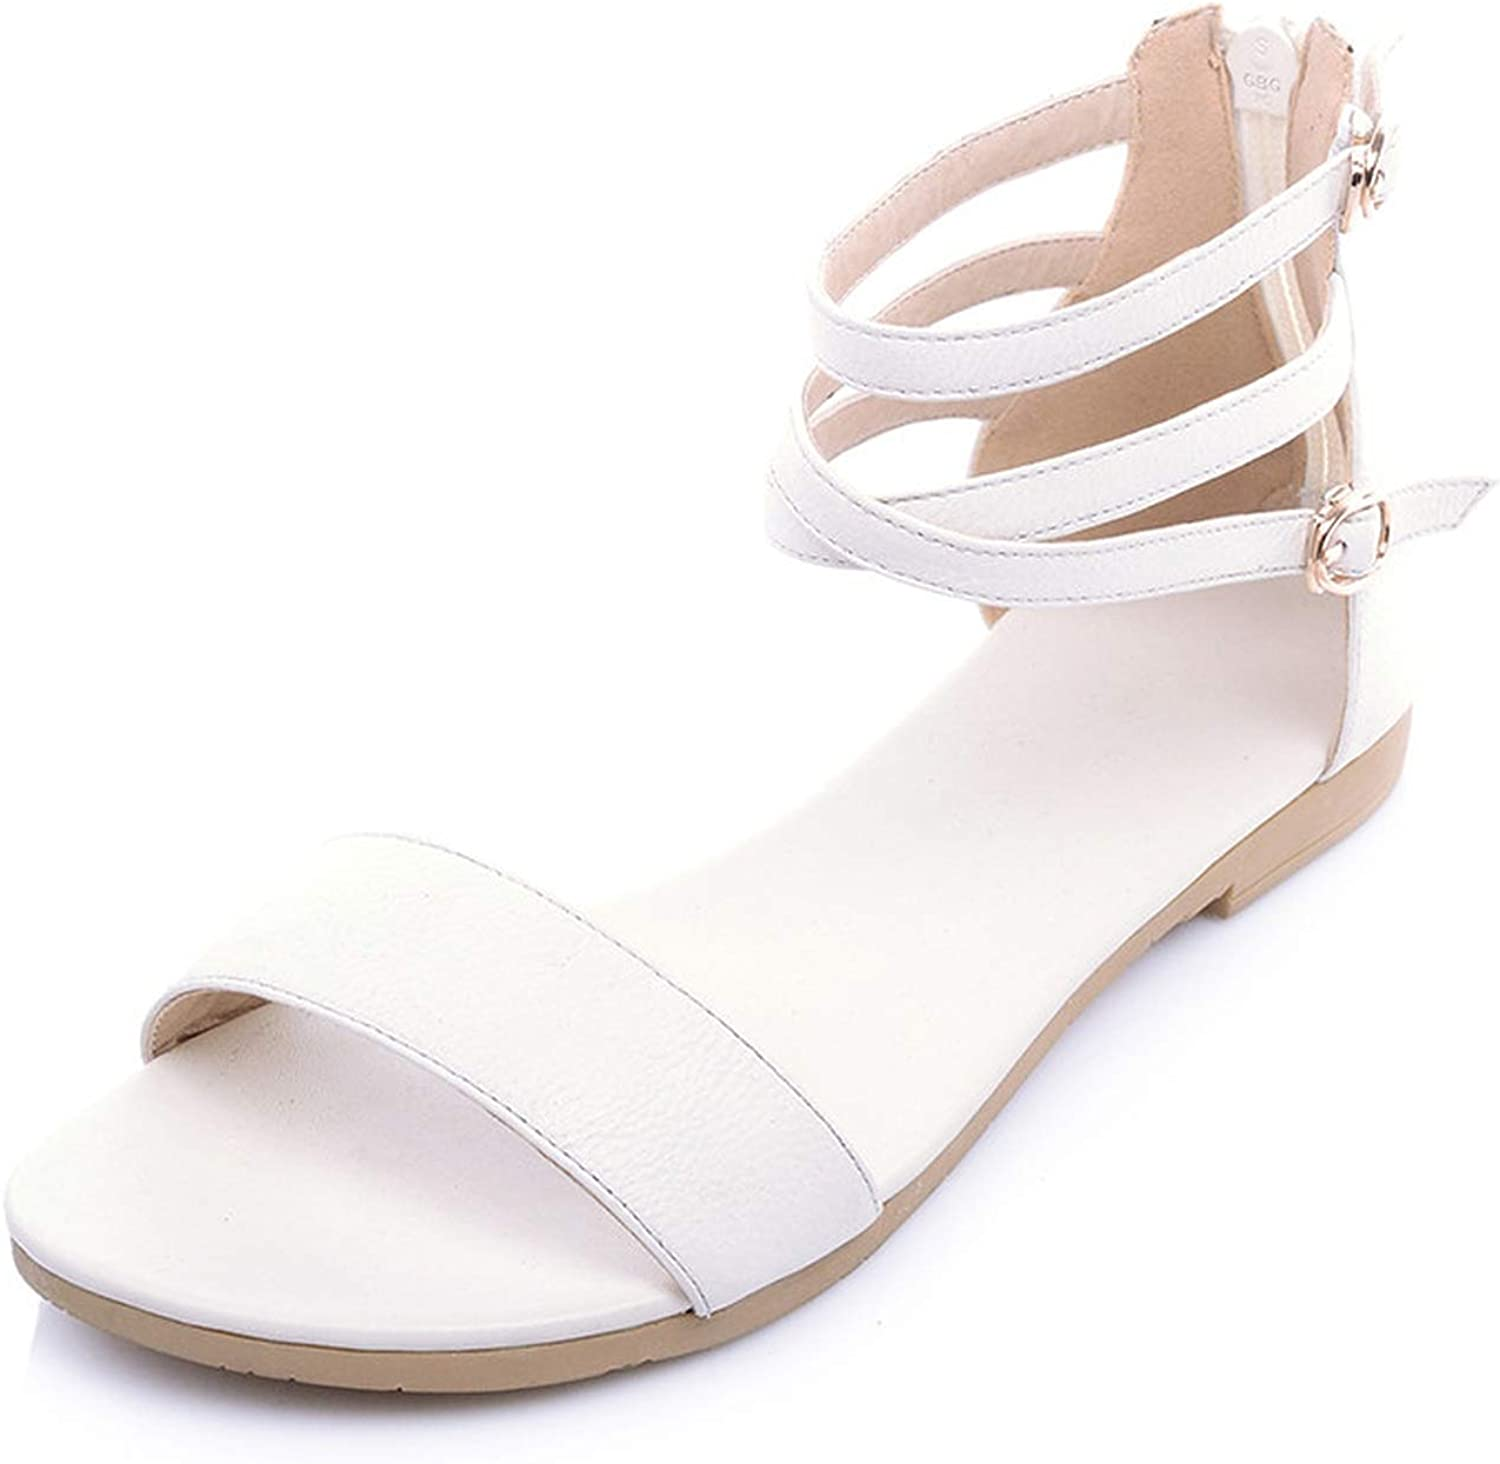 Heart to Hear Summer Arrive Women Sandals Simple Buckle Solid colors Low Heels Lady,